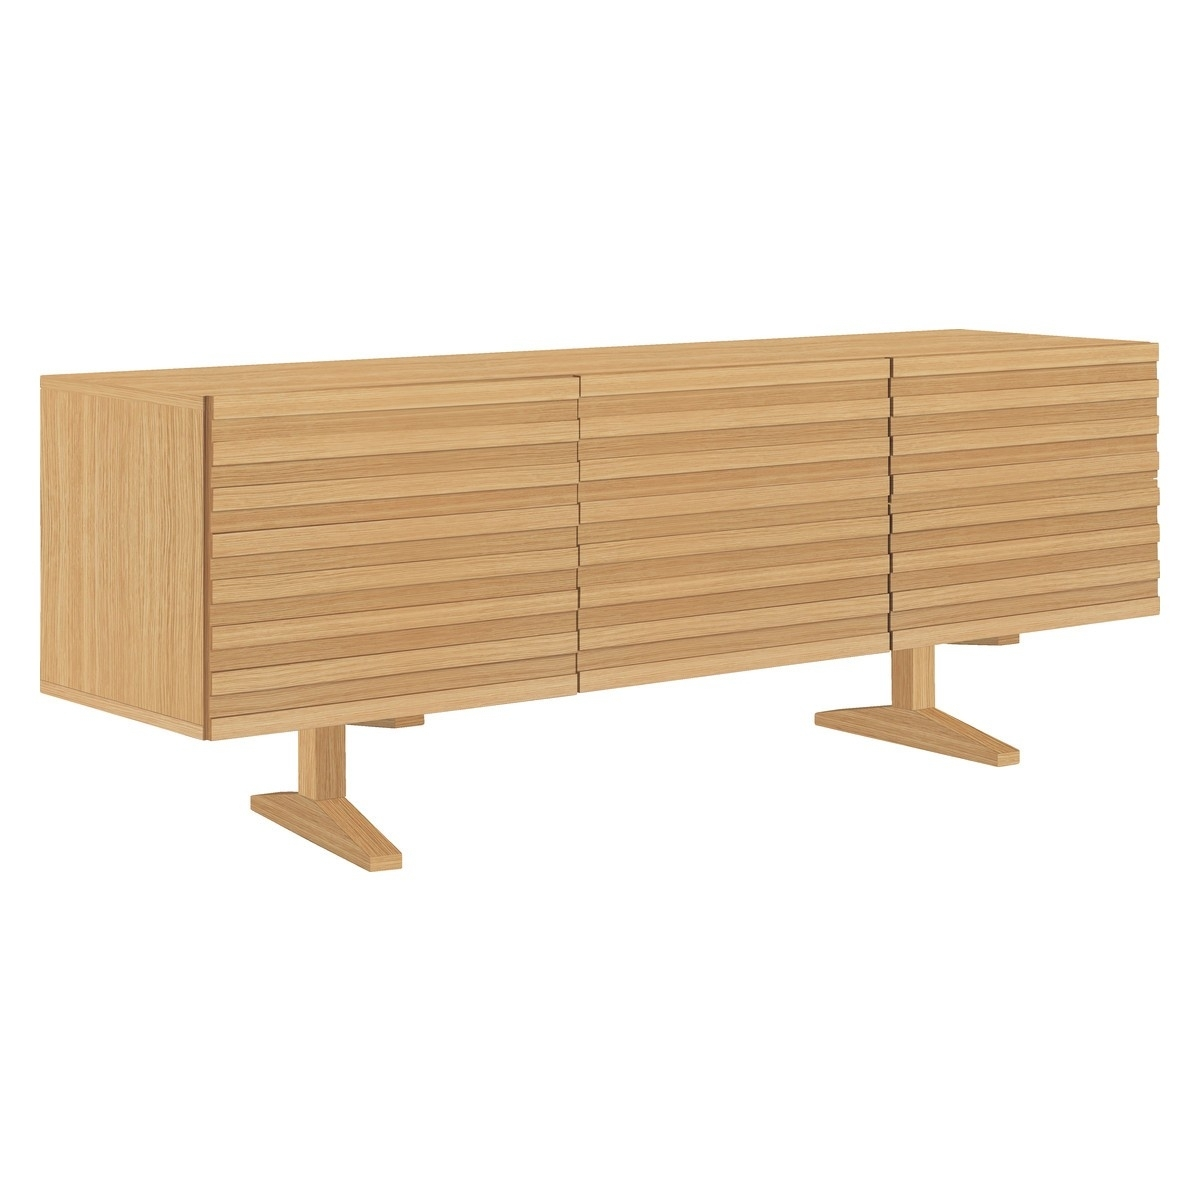 Enzo Oak Sideboard With 2 Doors And 2 Drawers | Buy Now At Habitat Uk with 2-Door Mirror Front Sideboards (Image 11 of 30)